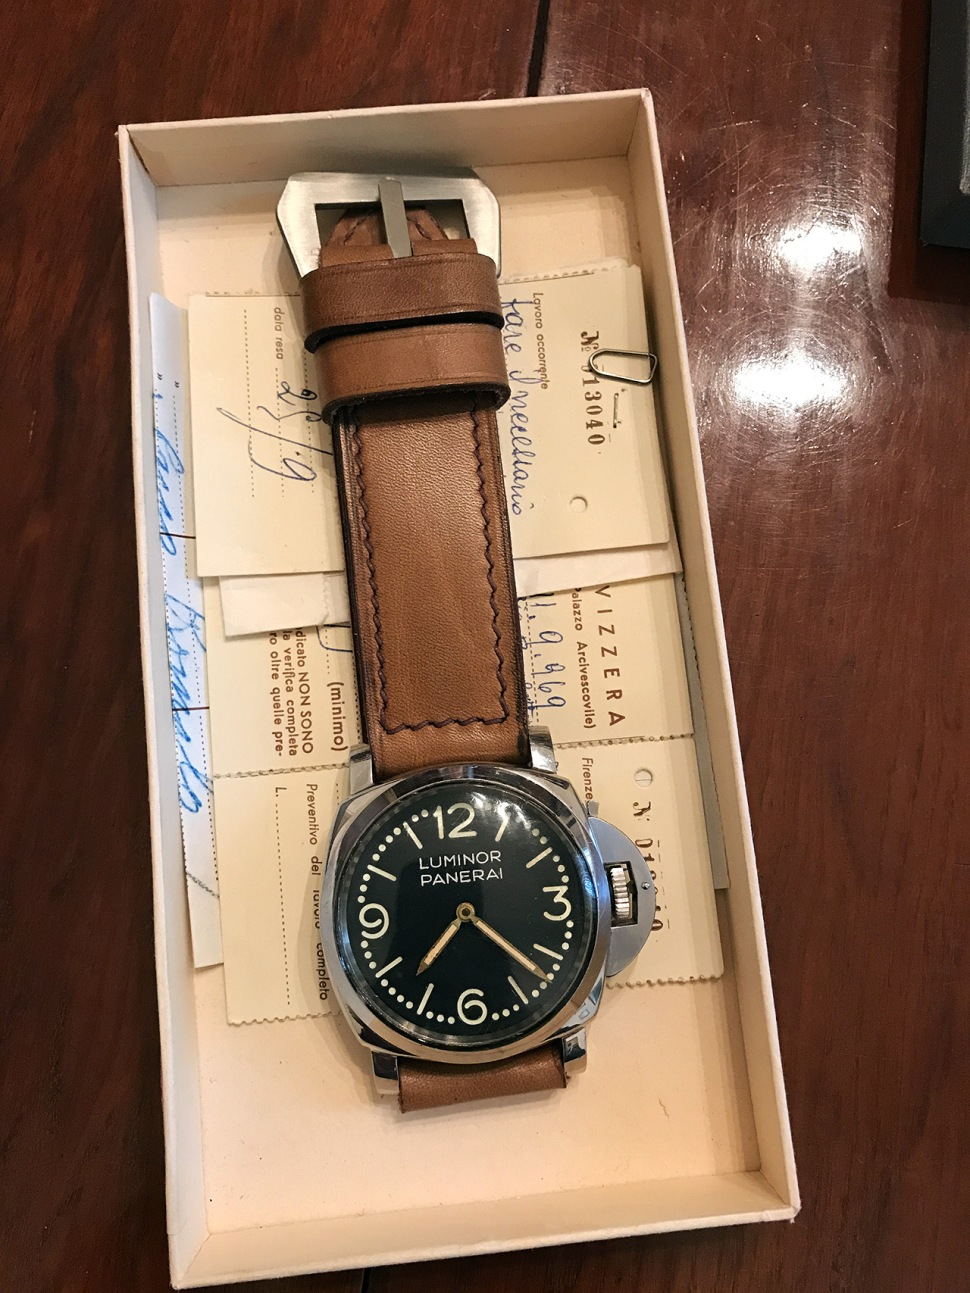 https://watchengines.files.wordpress.com/2018/06/180613-villino-panerai-6152-1-dot-dial.jpg?w=970